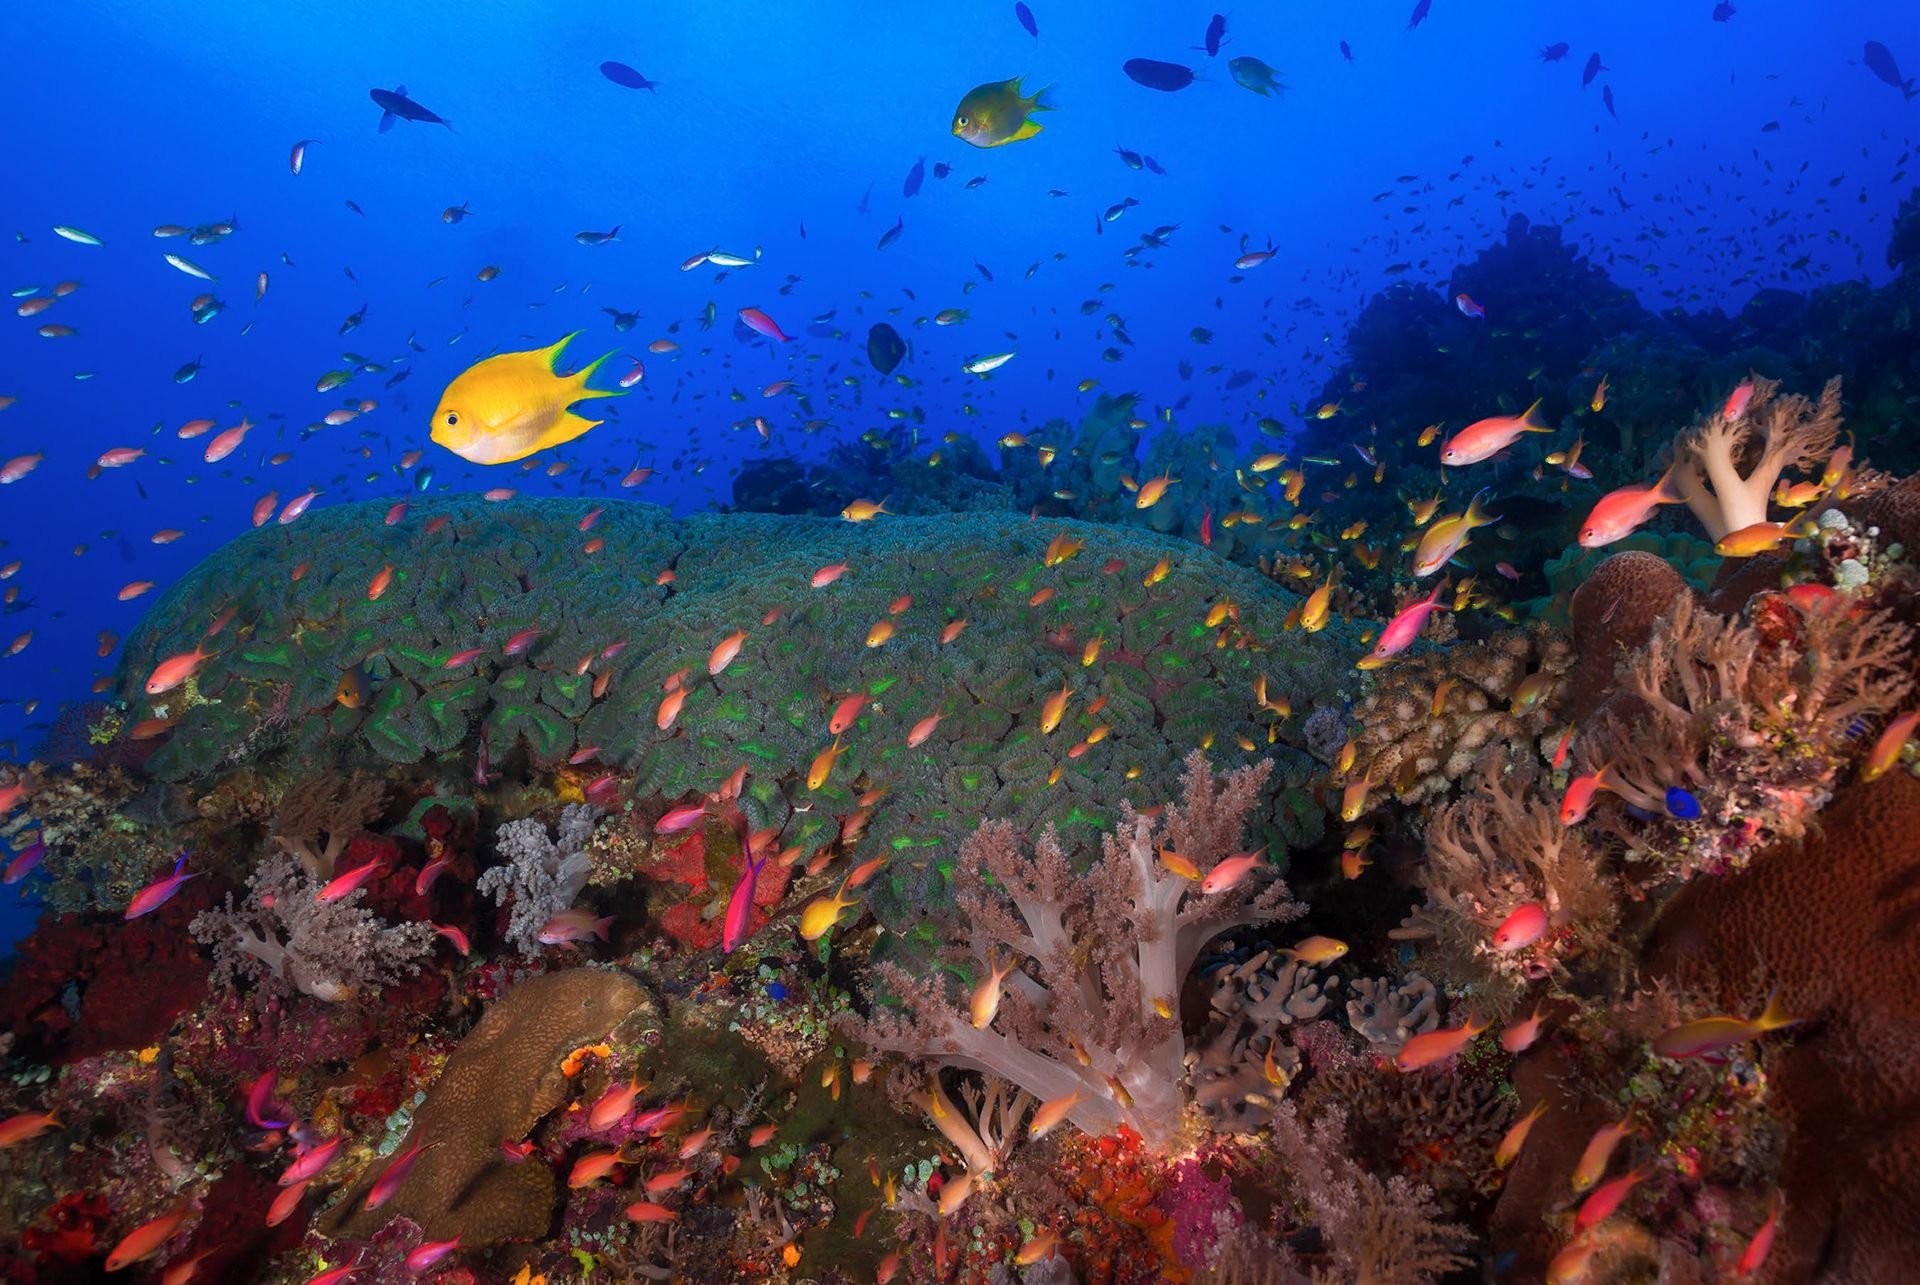 Tubbataha Reefs: Dive Into The Surreal Waters Of This UNESCO World Heritage Site